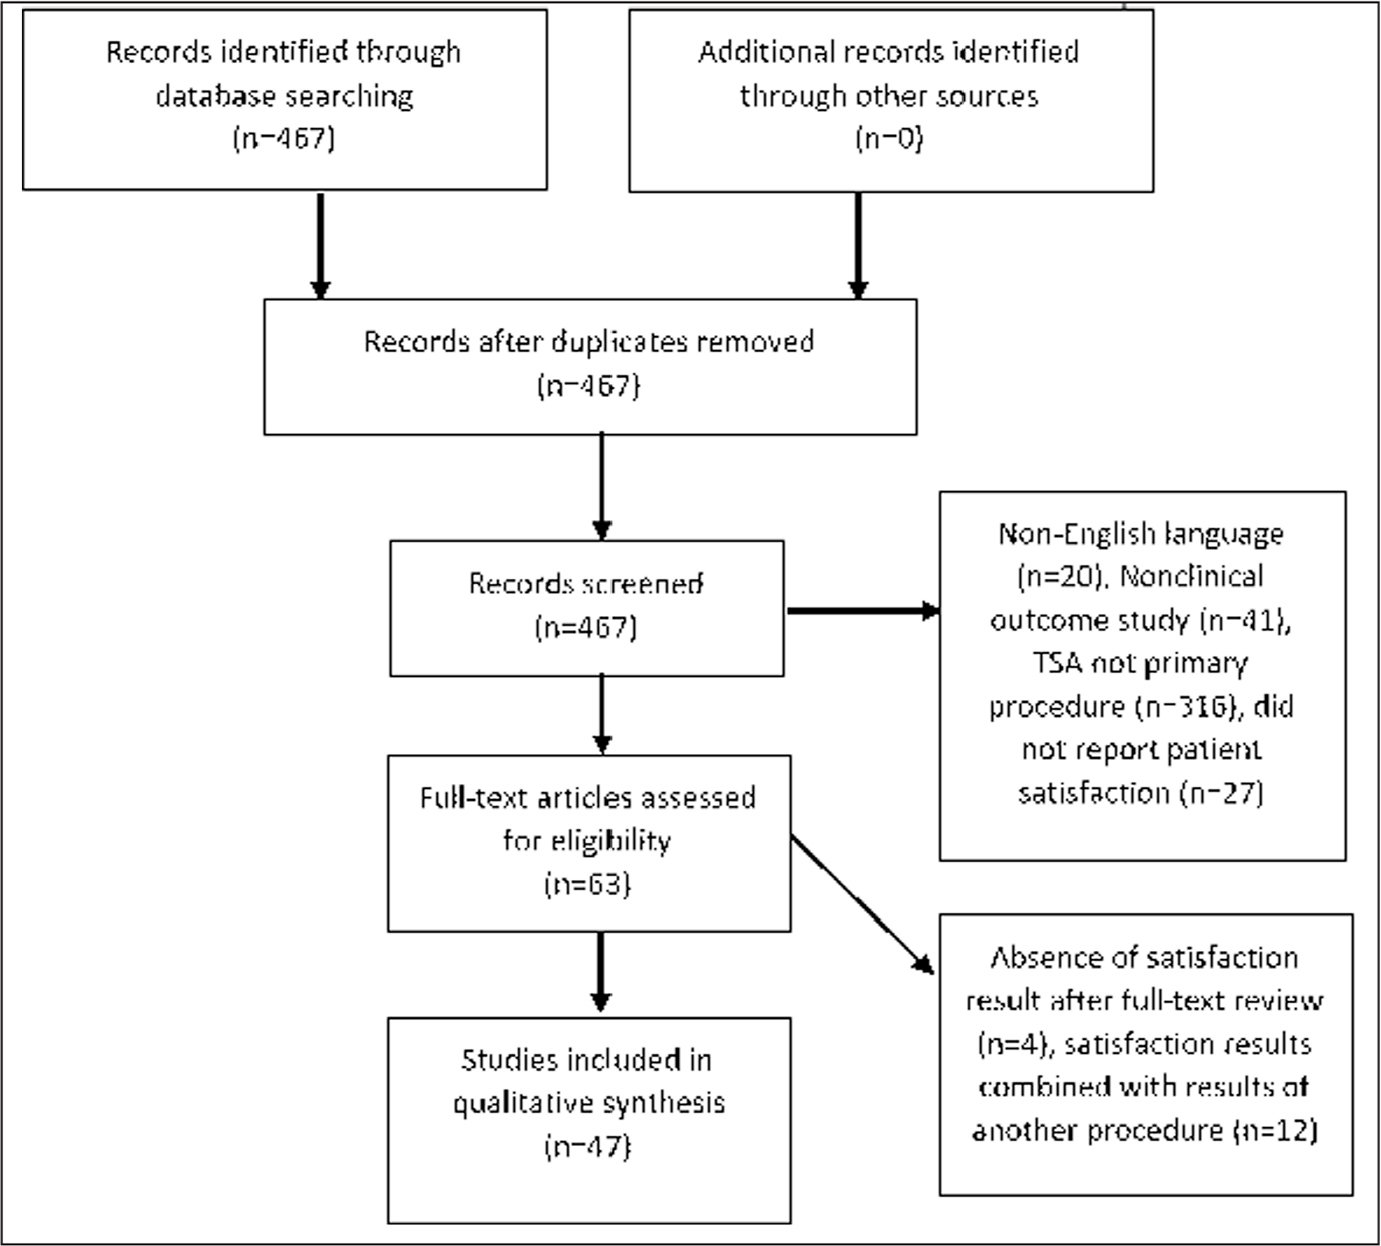 Preferred Reporting Items for Systematic Reviews and Meta-Analyses (PRISMA) flowchart for study inclusion. Abbreviation: TSA, total shoulder arthroplasty.